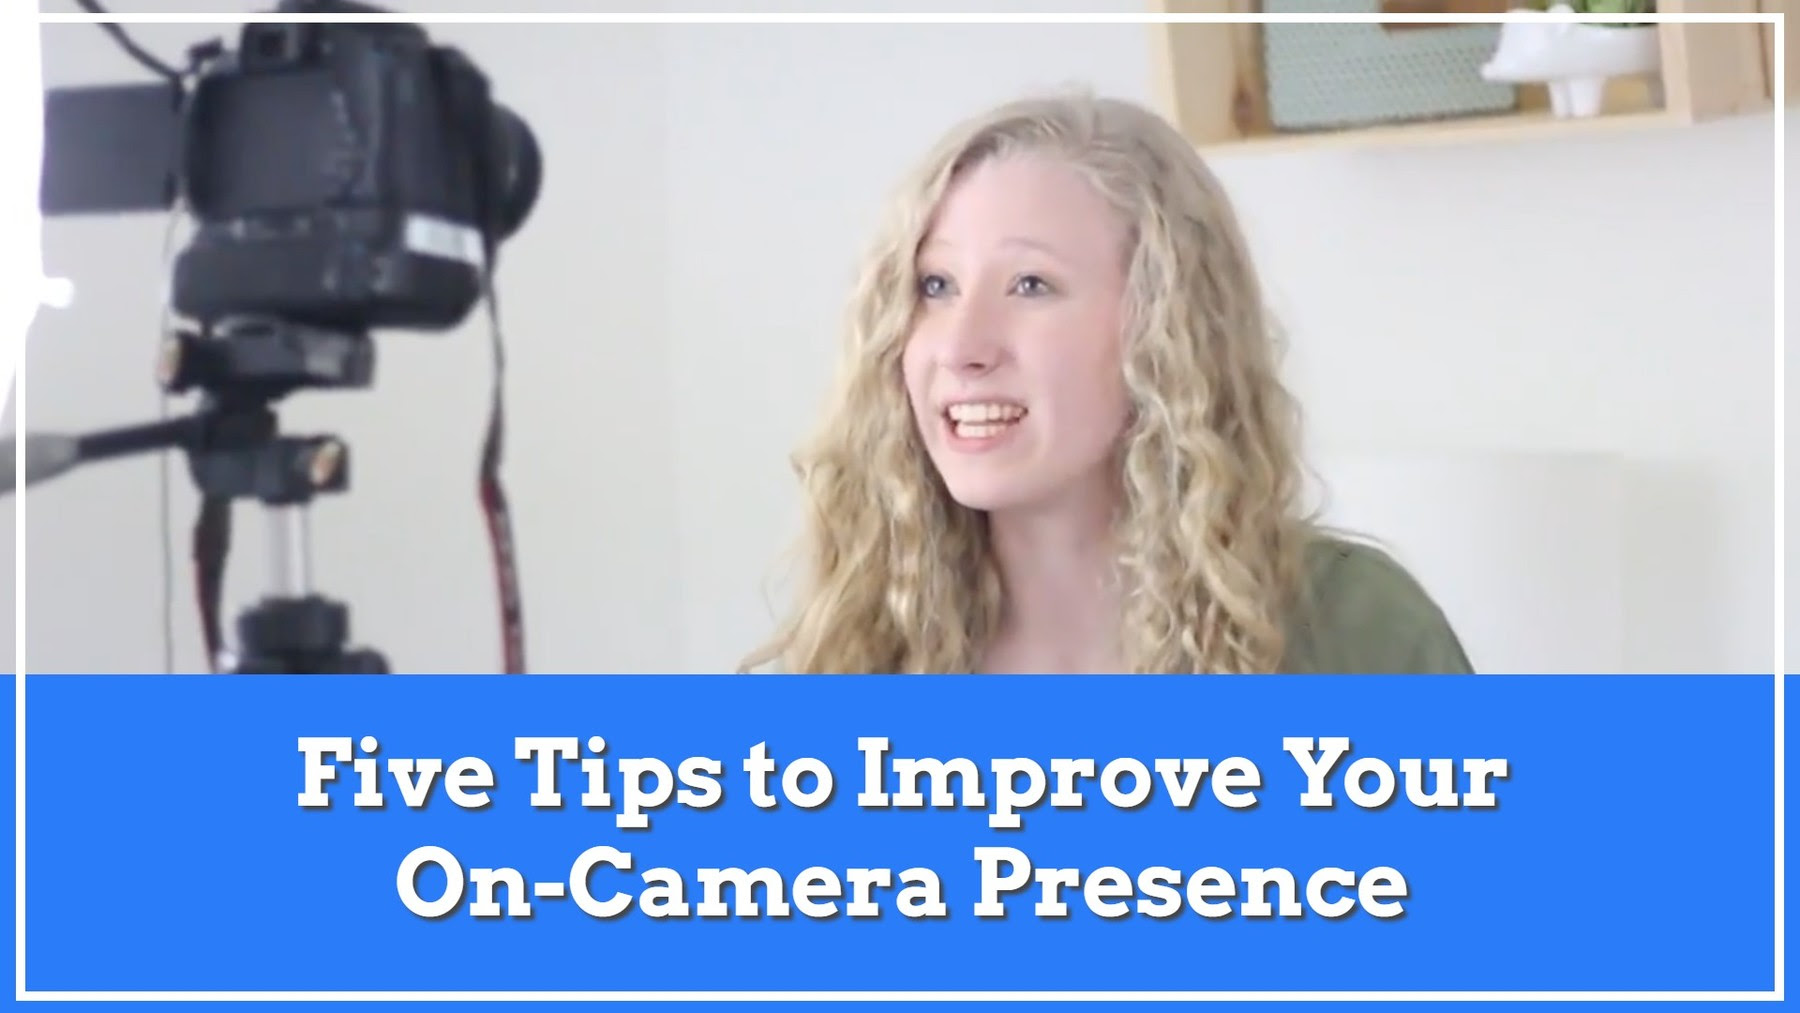 Watch the video on how to improve your on camera presence